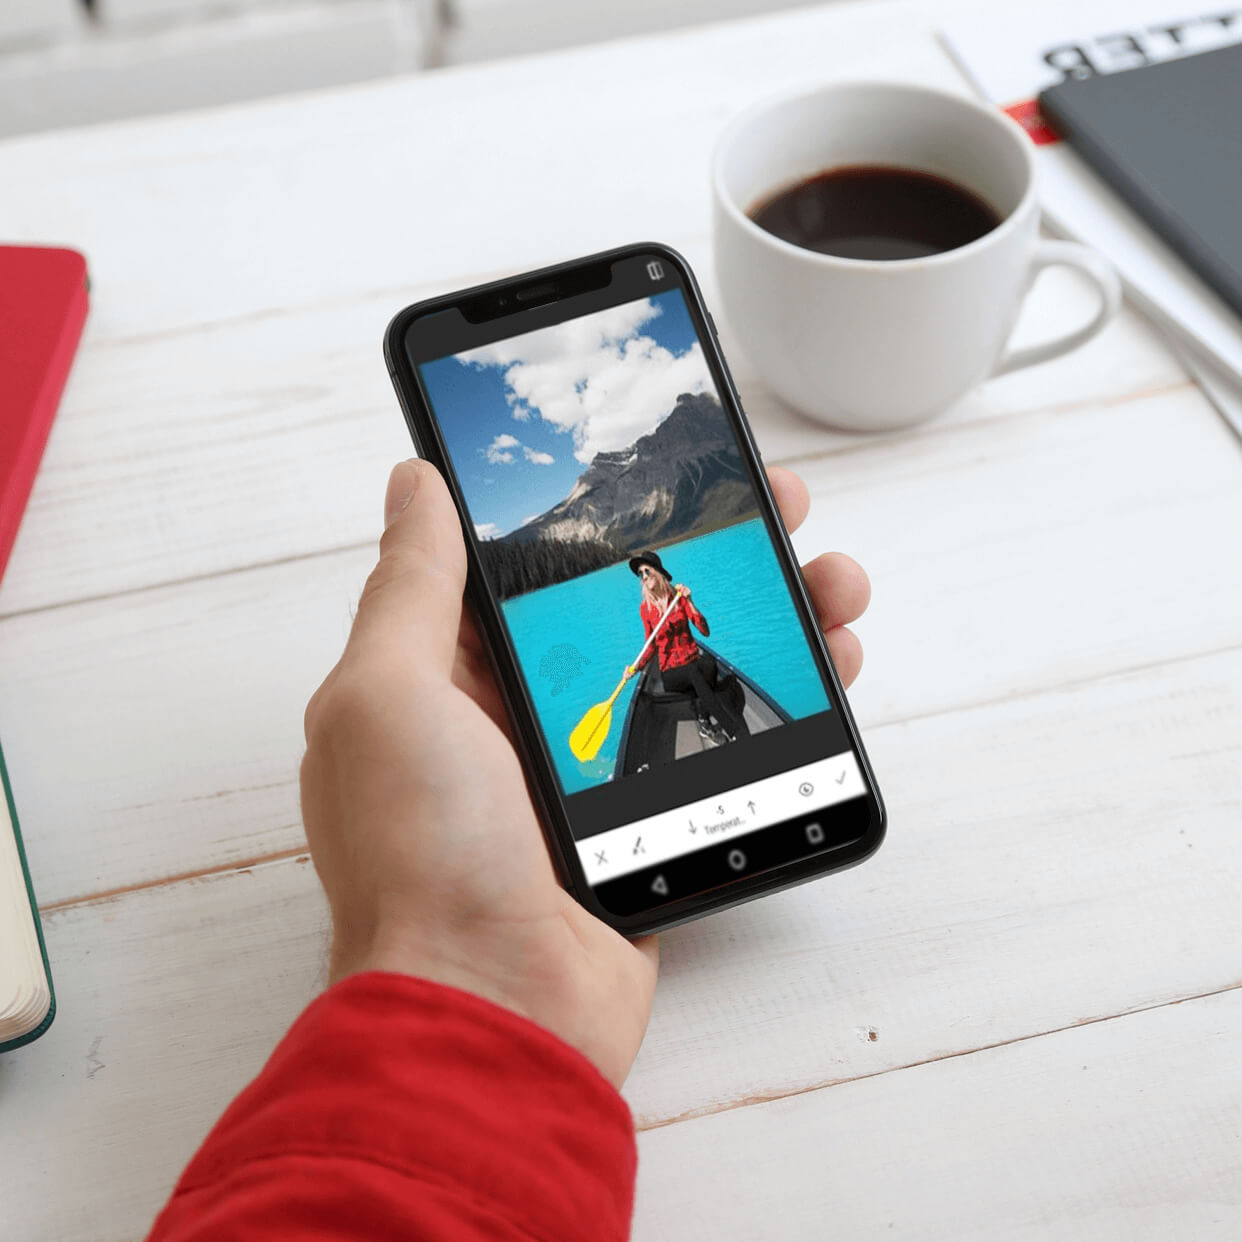 17 Free Photo Editing Apps How To Choose The Best Free Photo Editing App